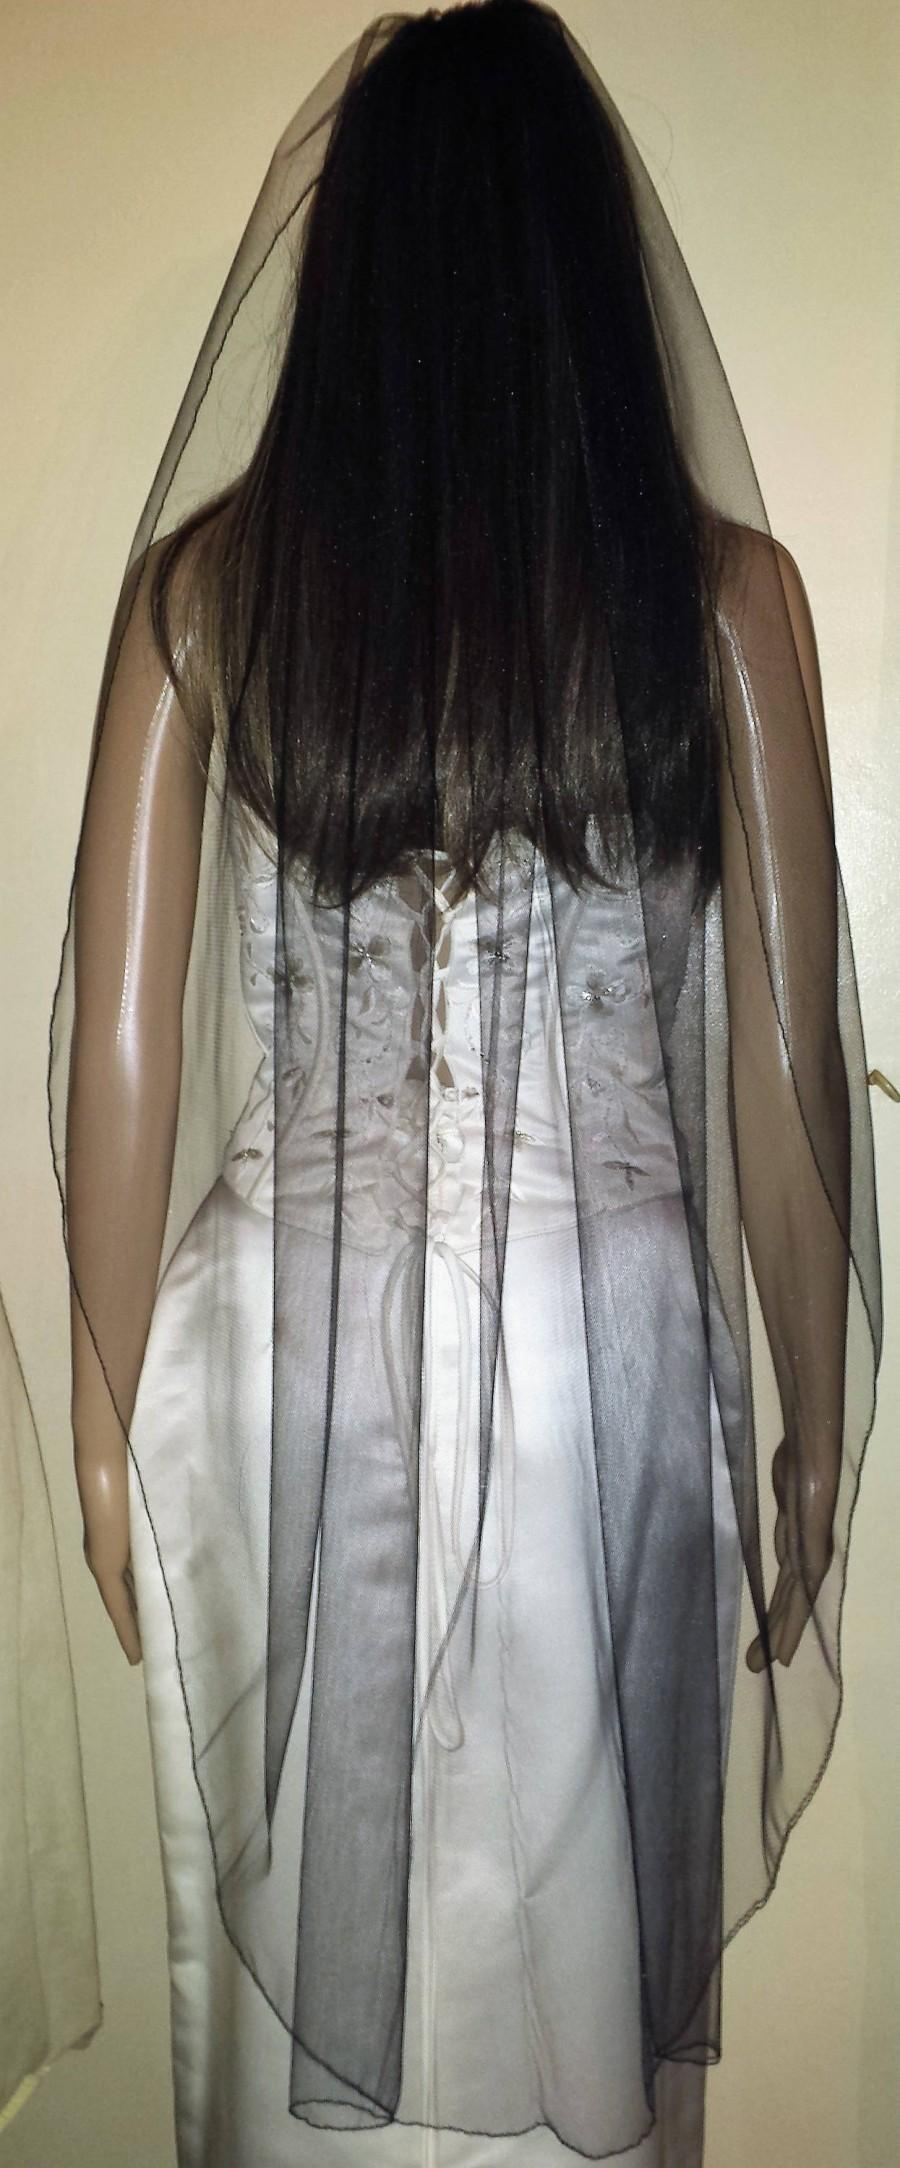 "Hochzeit - Black veil 42"" 1 Tier Gothic party Halloween wedding veil Fingertip length Pencil edged. FREE UK POSTAGE"